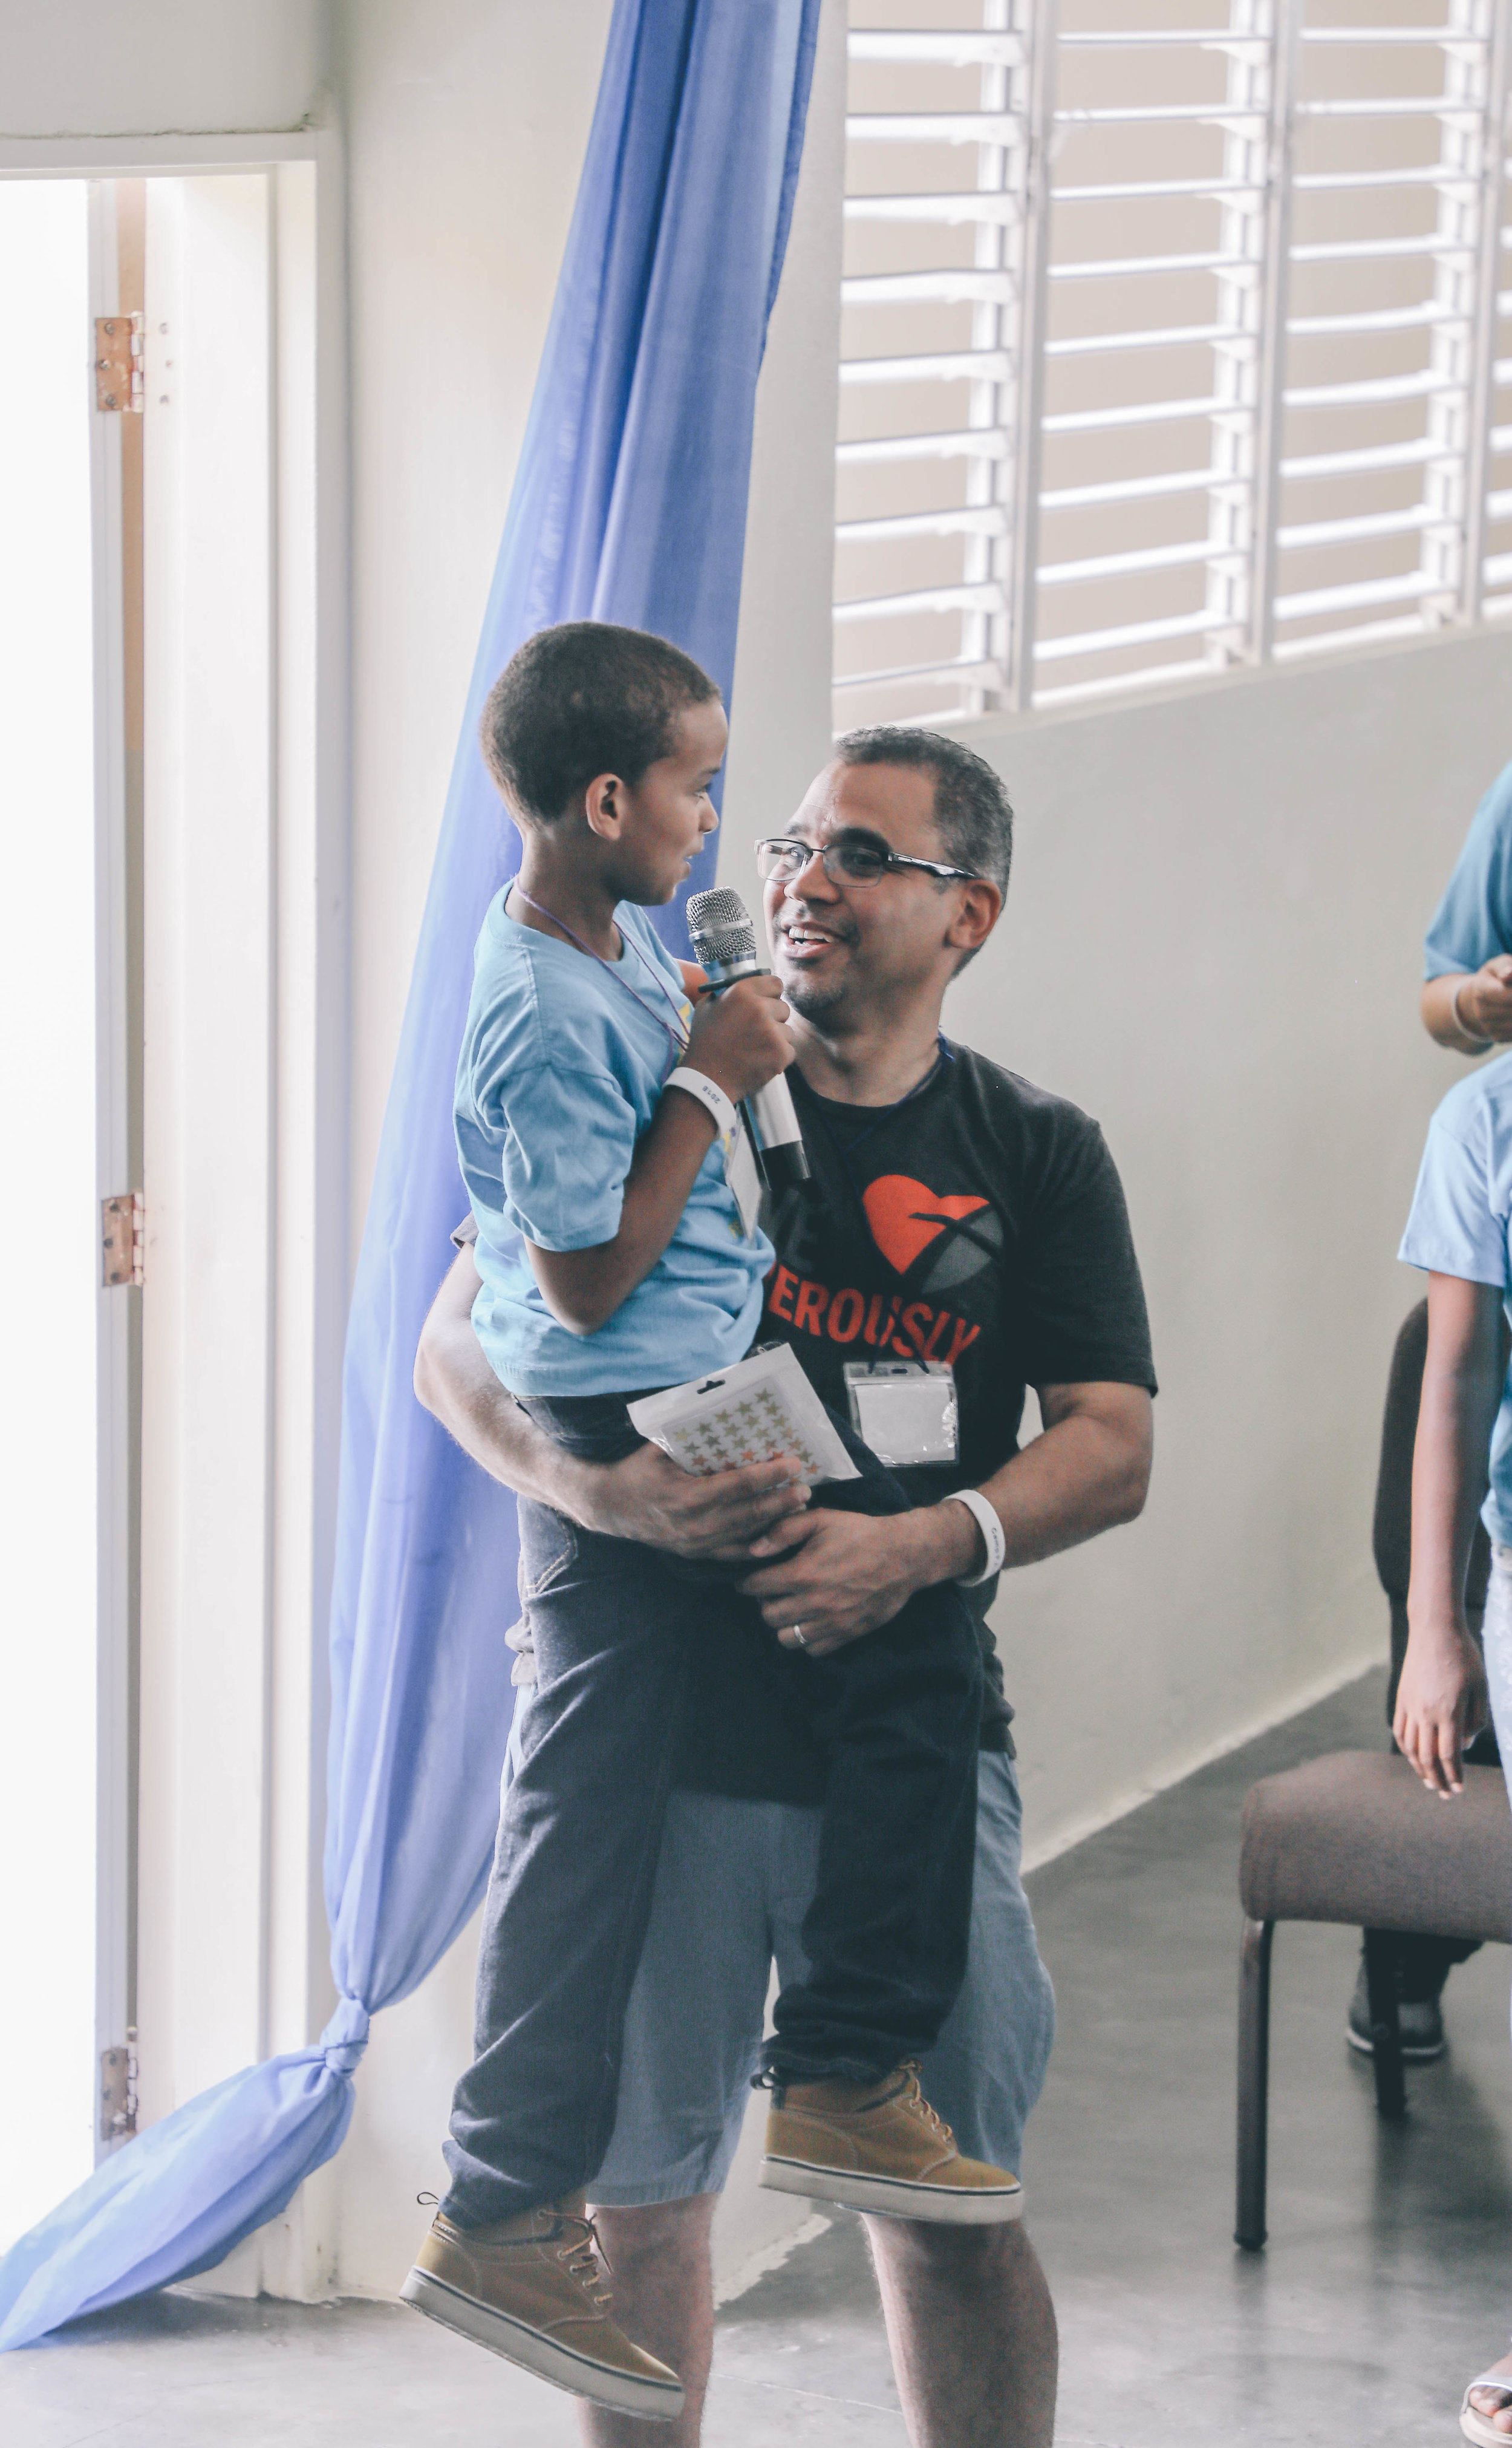 20180908-DominicanMissions-164.jpg